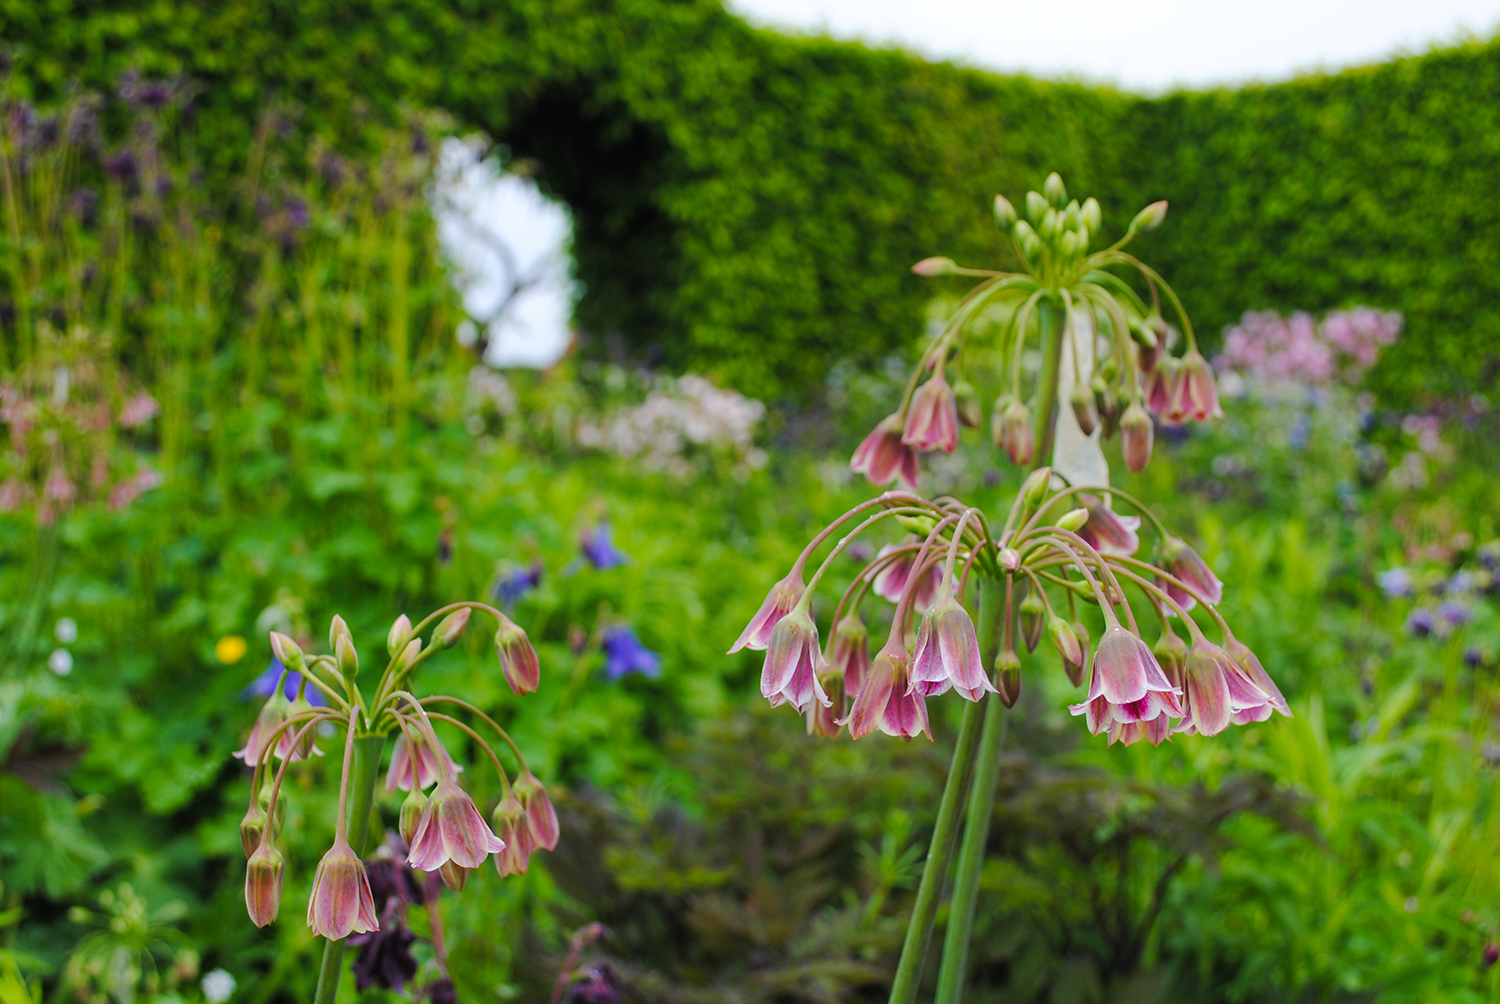 As Sia sings, seeing Allium siculum in a garden makes me want to swing from a chandelier. Chan-de-li-er!!!